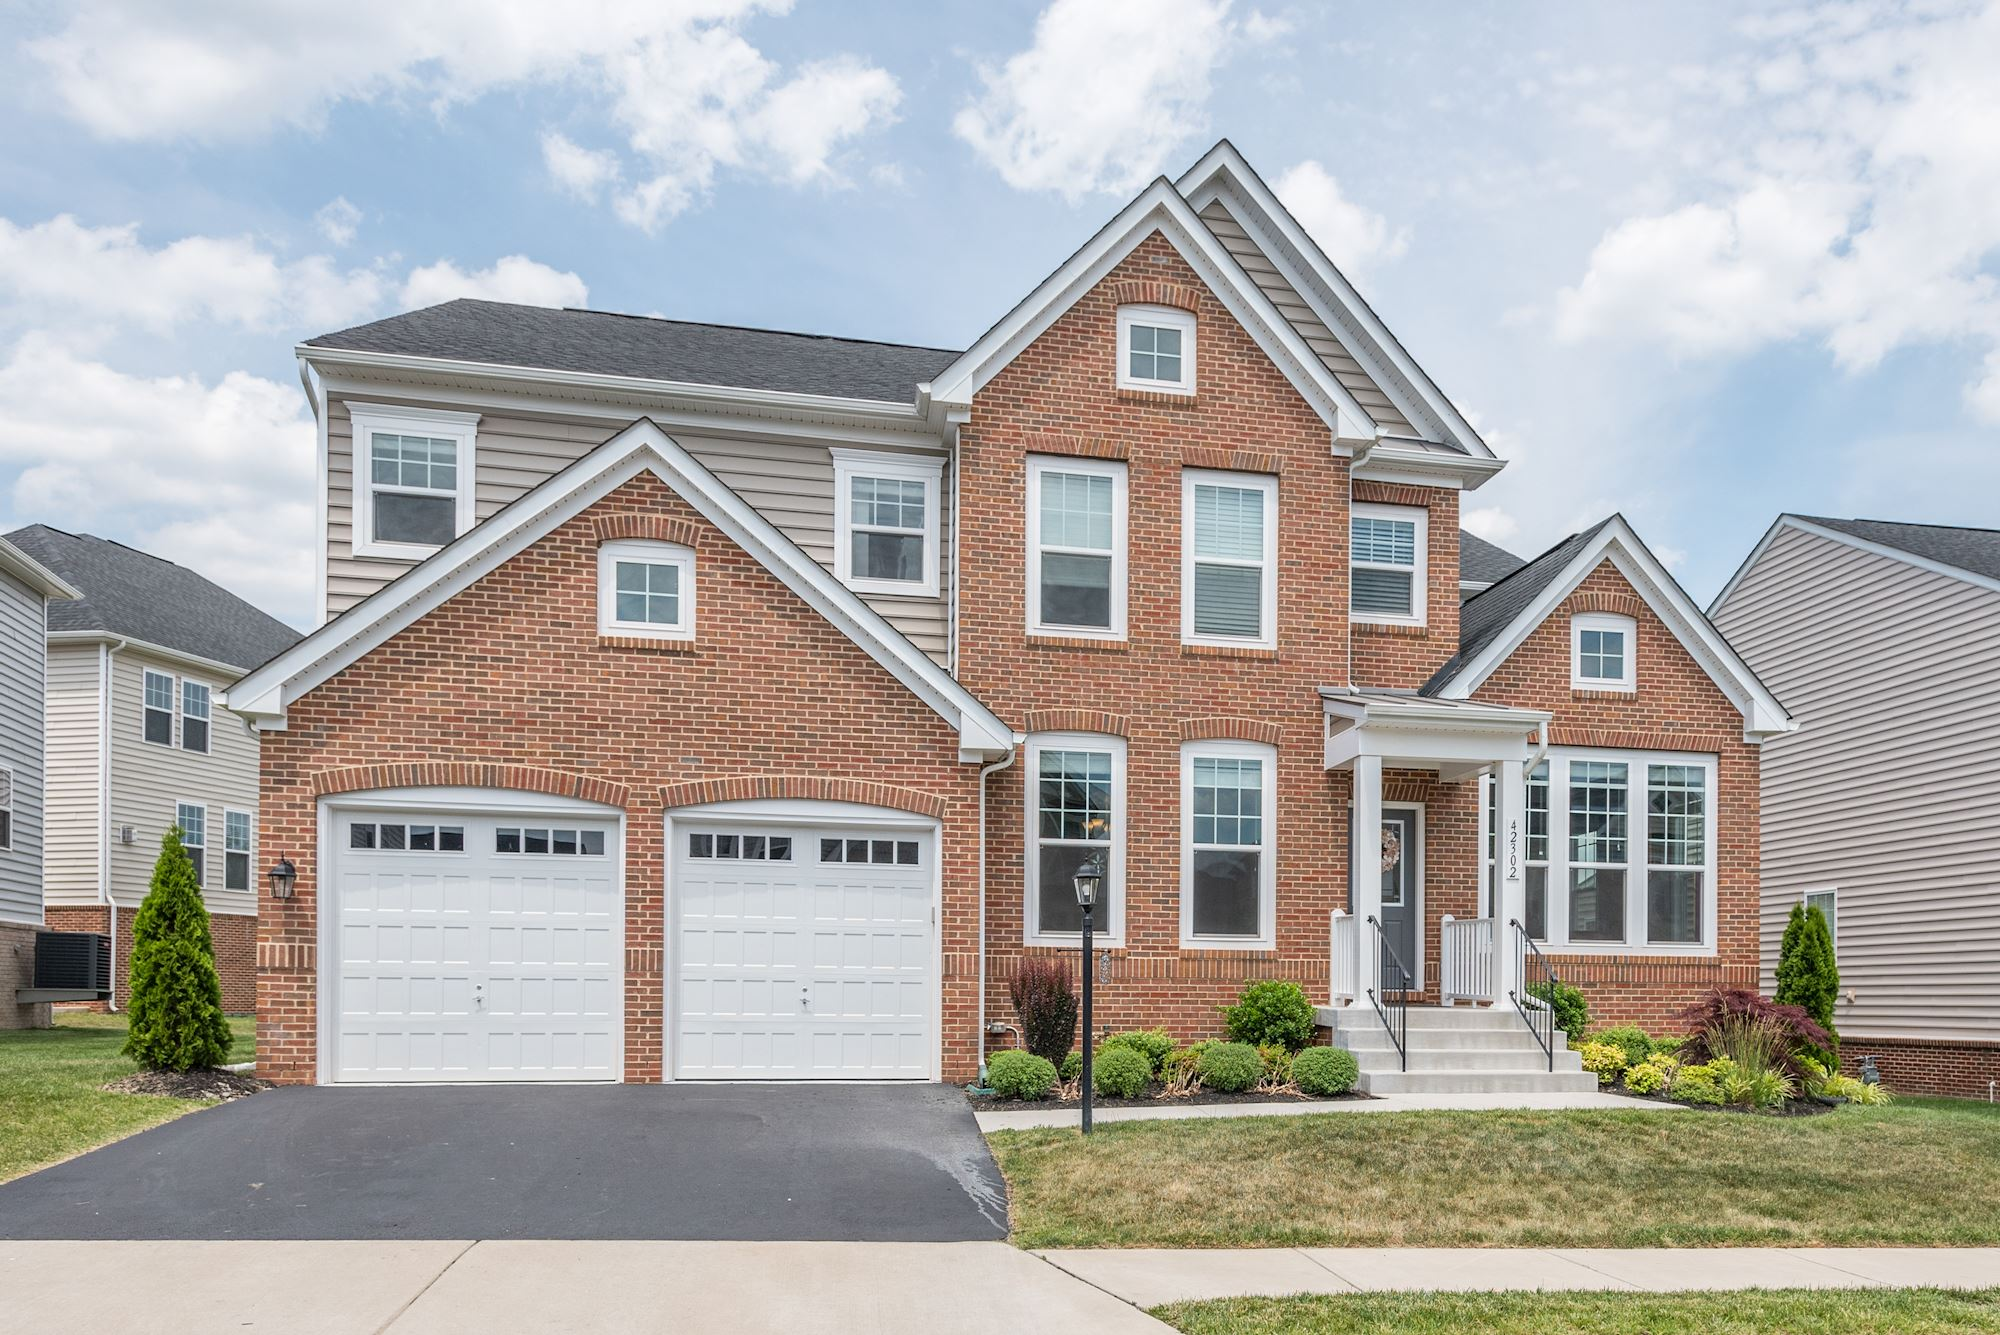 NEW LISTING: Perfection in Brambleton! 6 BD Van Metre Home in Ashburn, VA